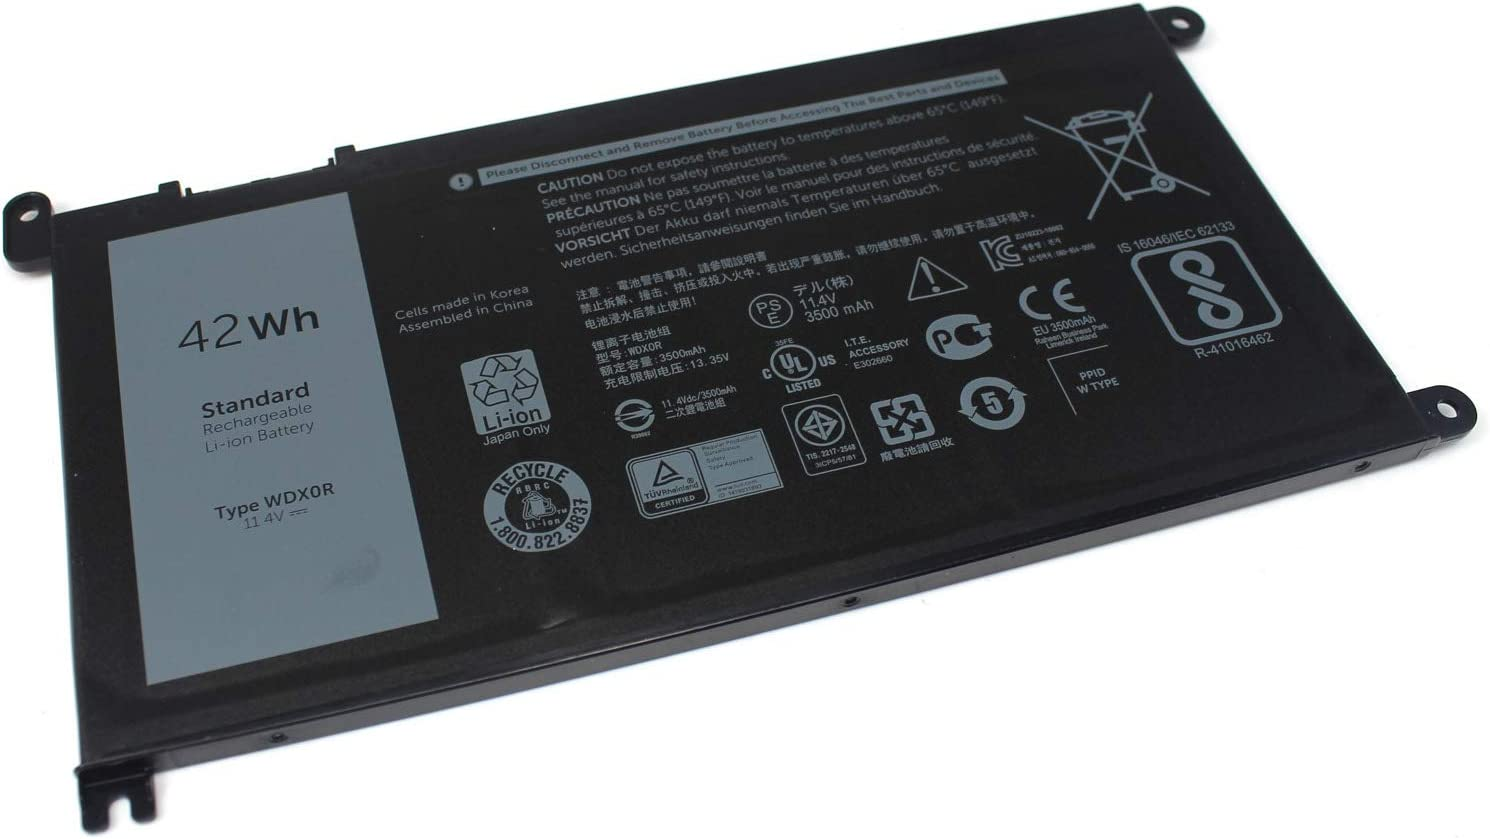 New WDX0R Lapotp Battery Compatible with Dell Inspiron 13 15 17 7000 5000 Series 15-5567 15-5568 15-5578 15-5565 15-7579 15-7569 15-7560 15-7570 5368 7378 5378 5379 7368 PC Computer.